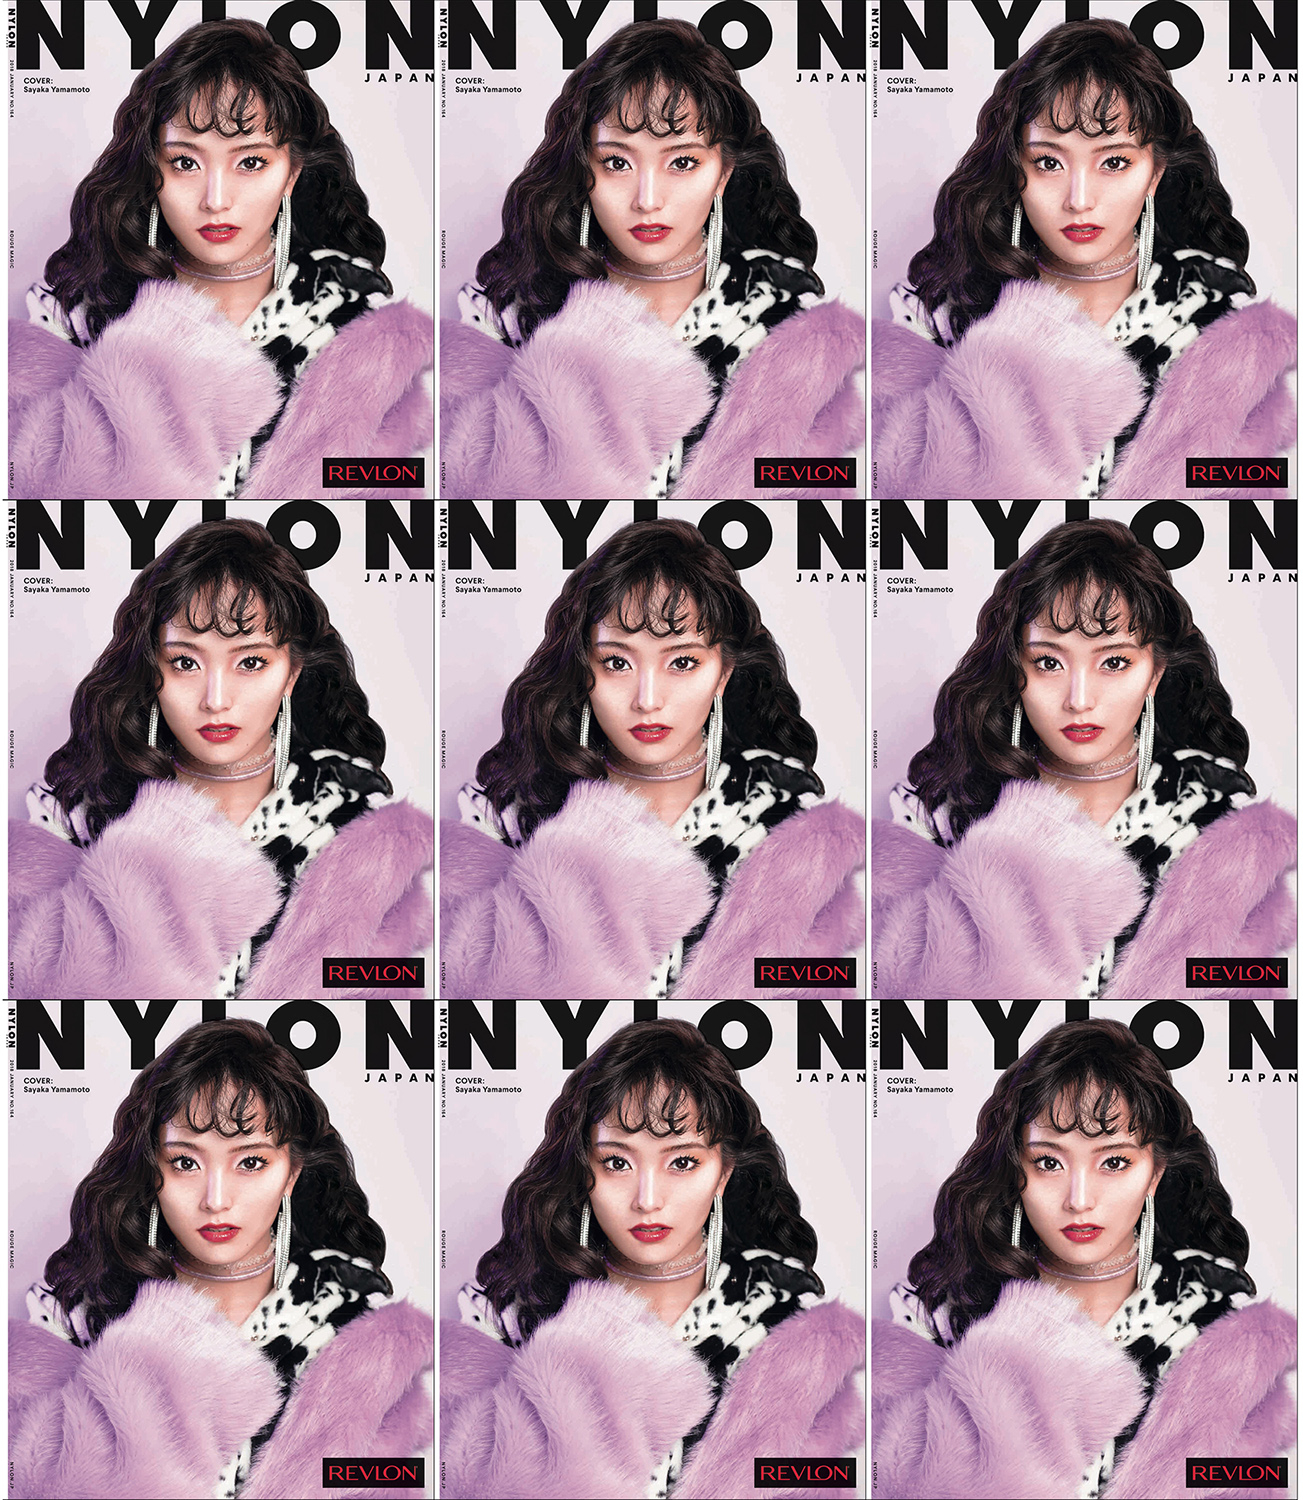 cover story for NYLON & REVLON